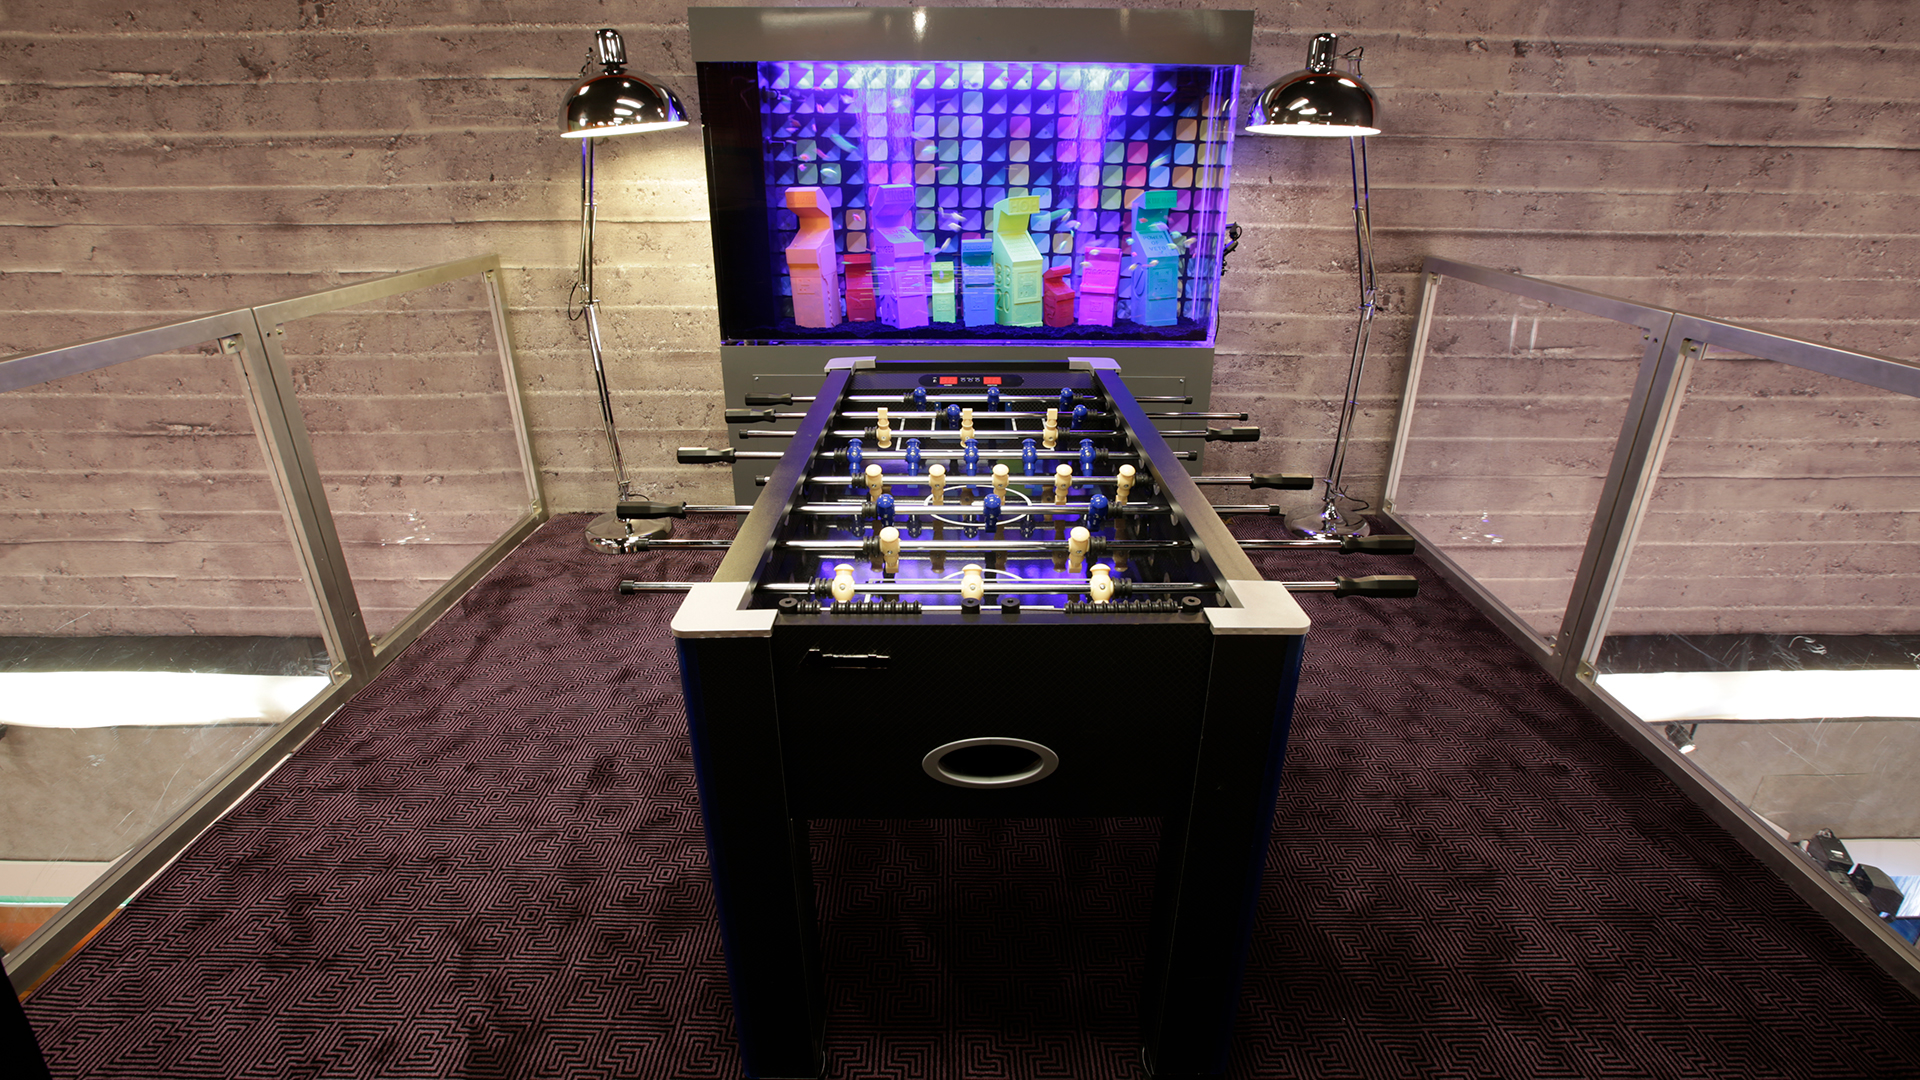 Upstairs, the bridge has been transformed into a gaming lounge with a classic foosball table and a giant aquarium with neon tropical hybrid fish swimming among sunken custom 3D printed miniature themed arcade games.